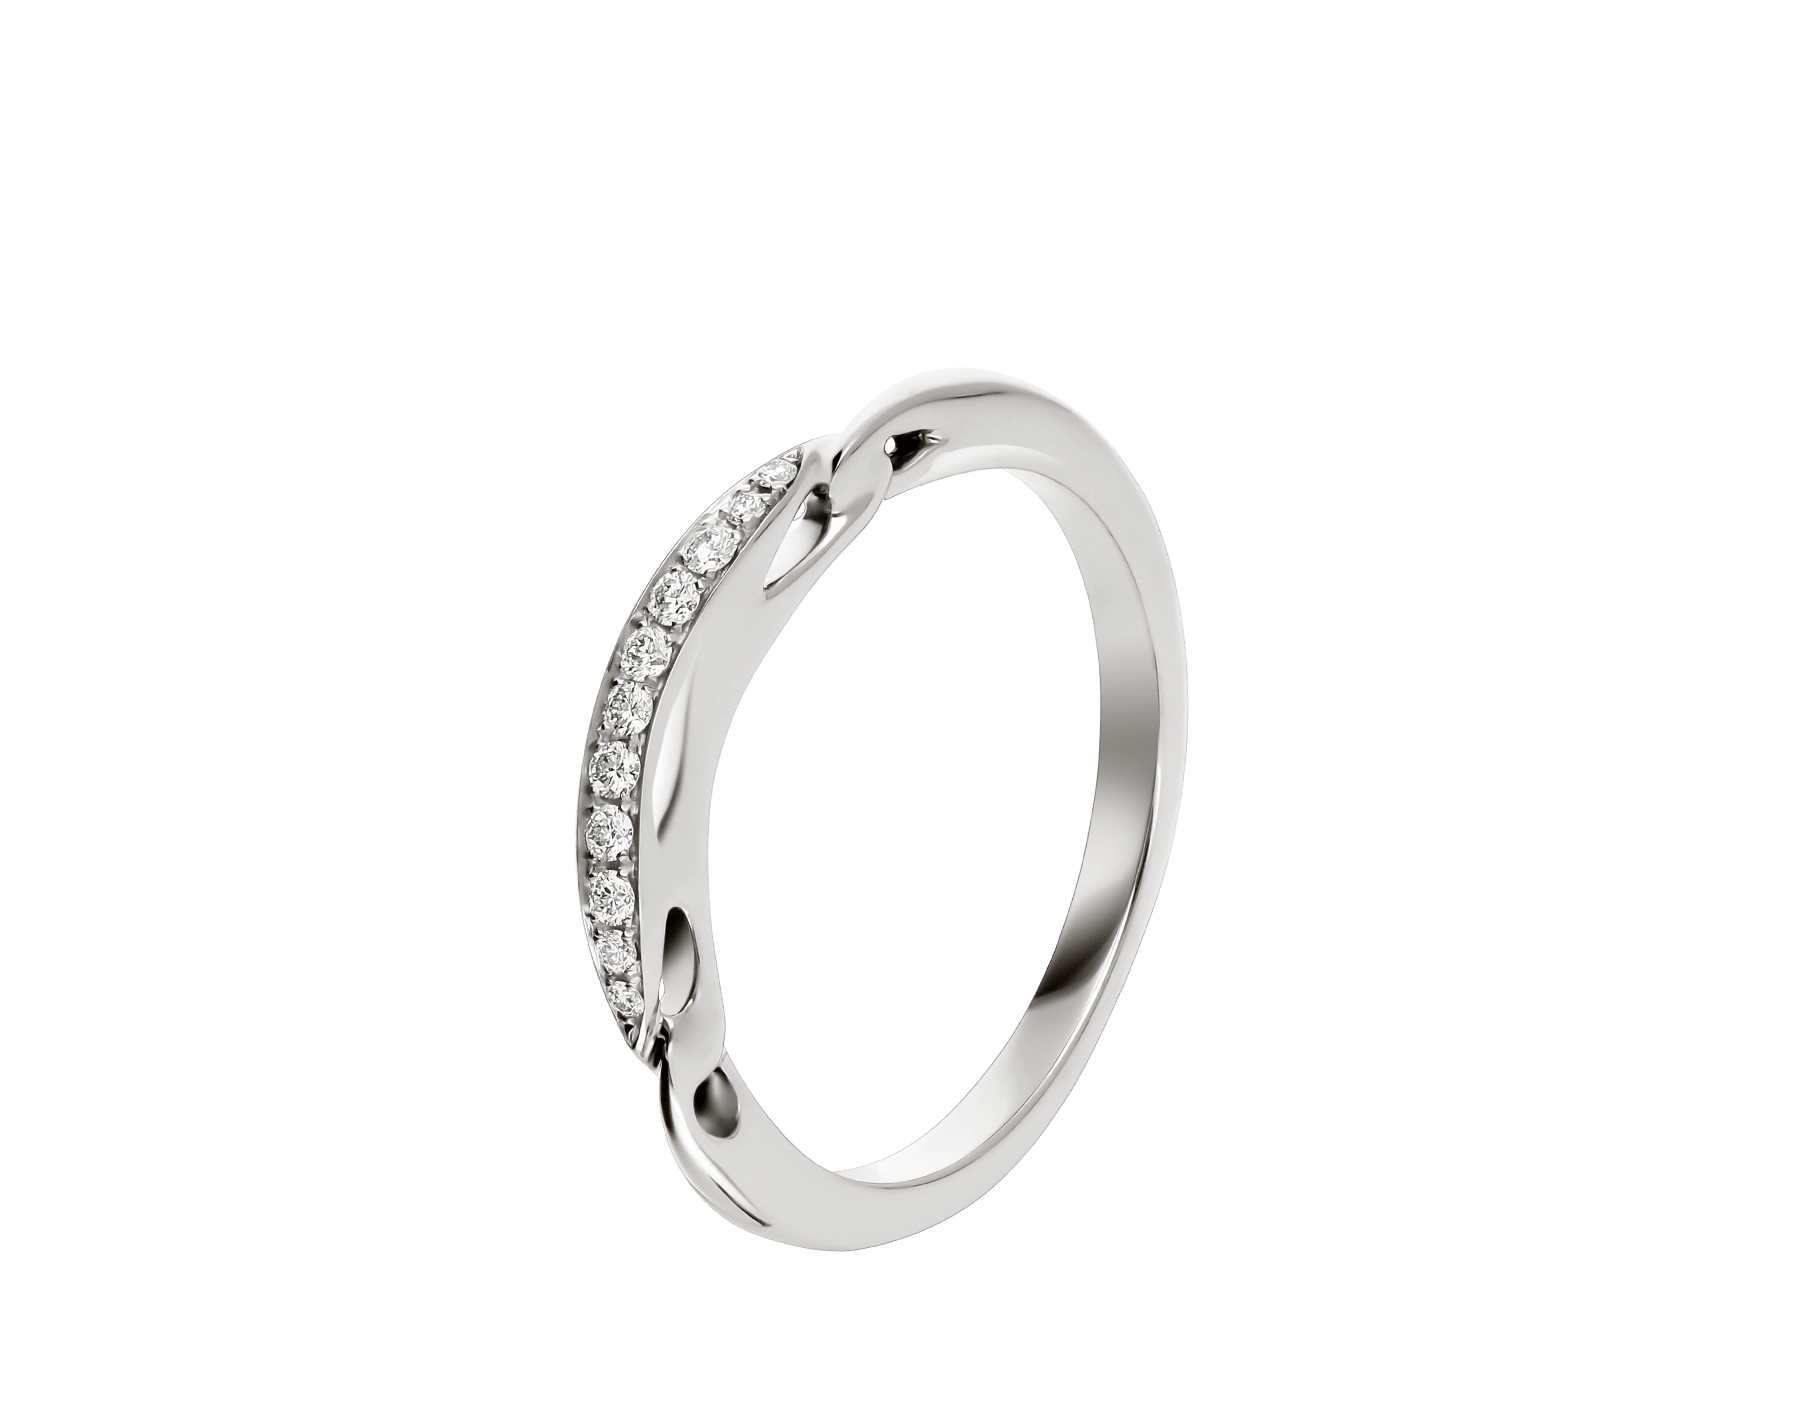 Incontro d'amore wedding band in platinum set with pavé diamonds (0.07 ct). AN858130 image 1